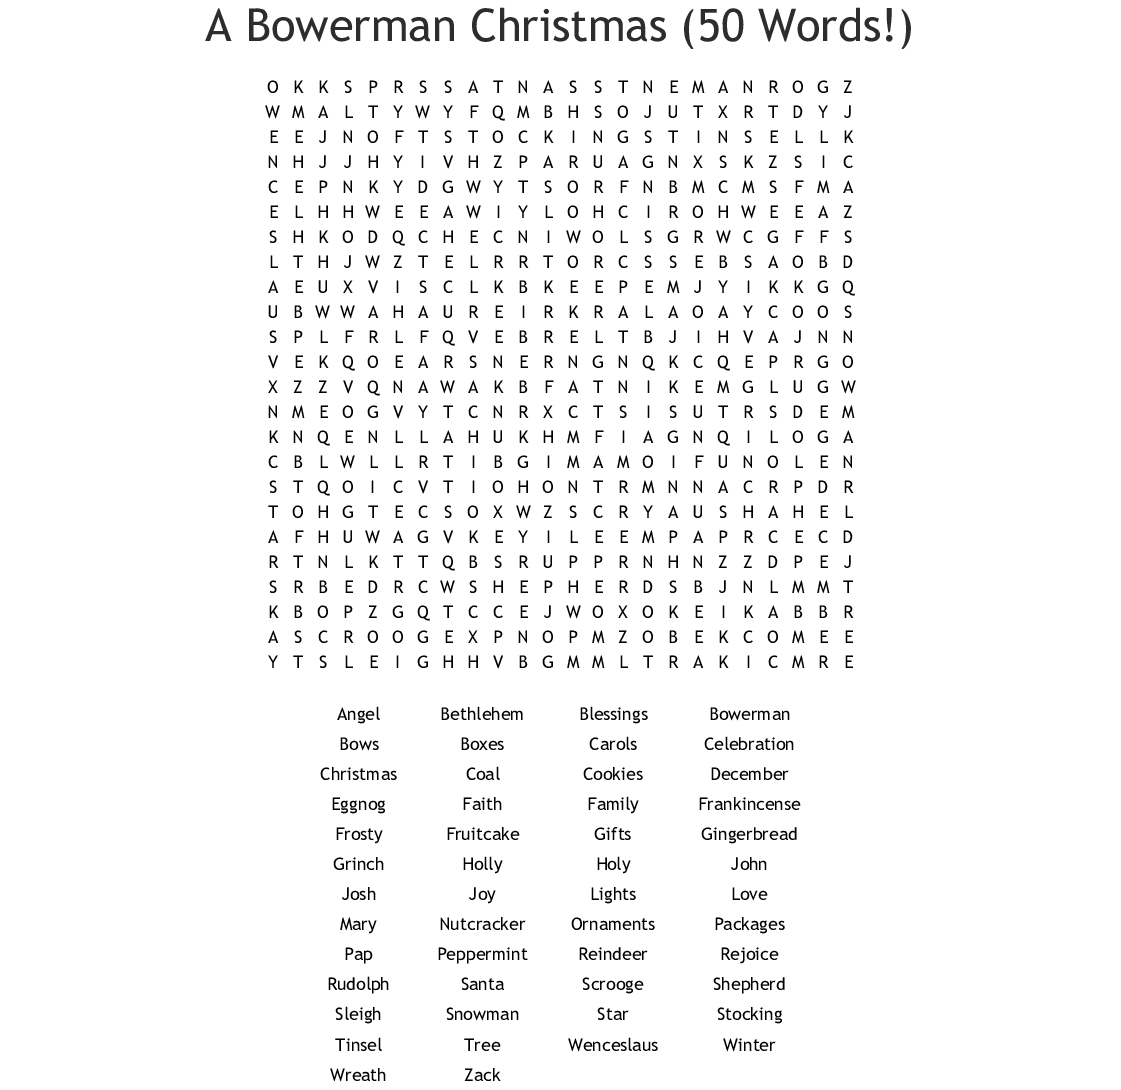 A Bowerman Christmas (50 Words!) Word